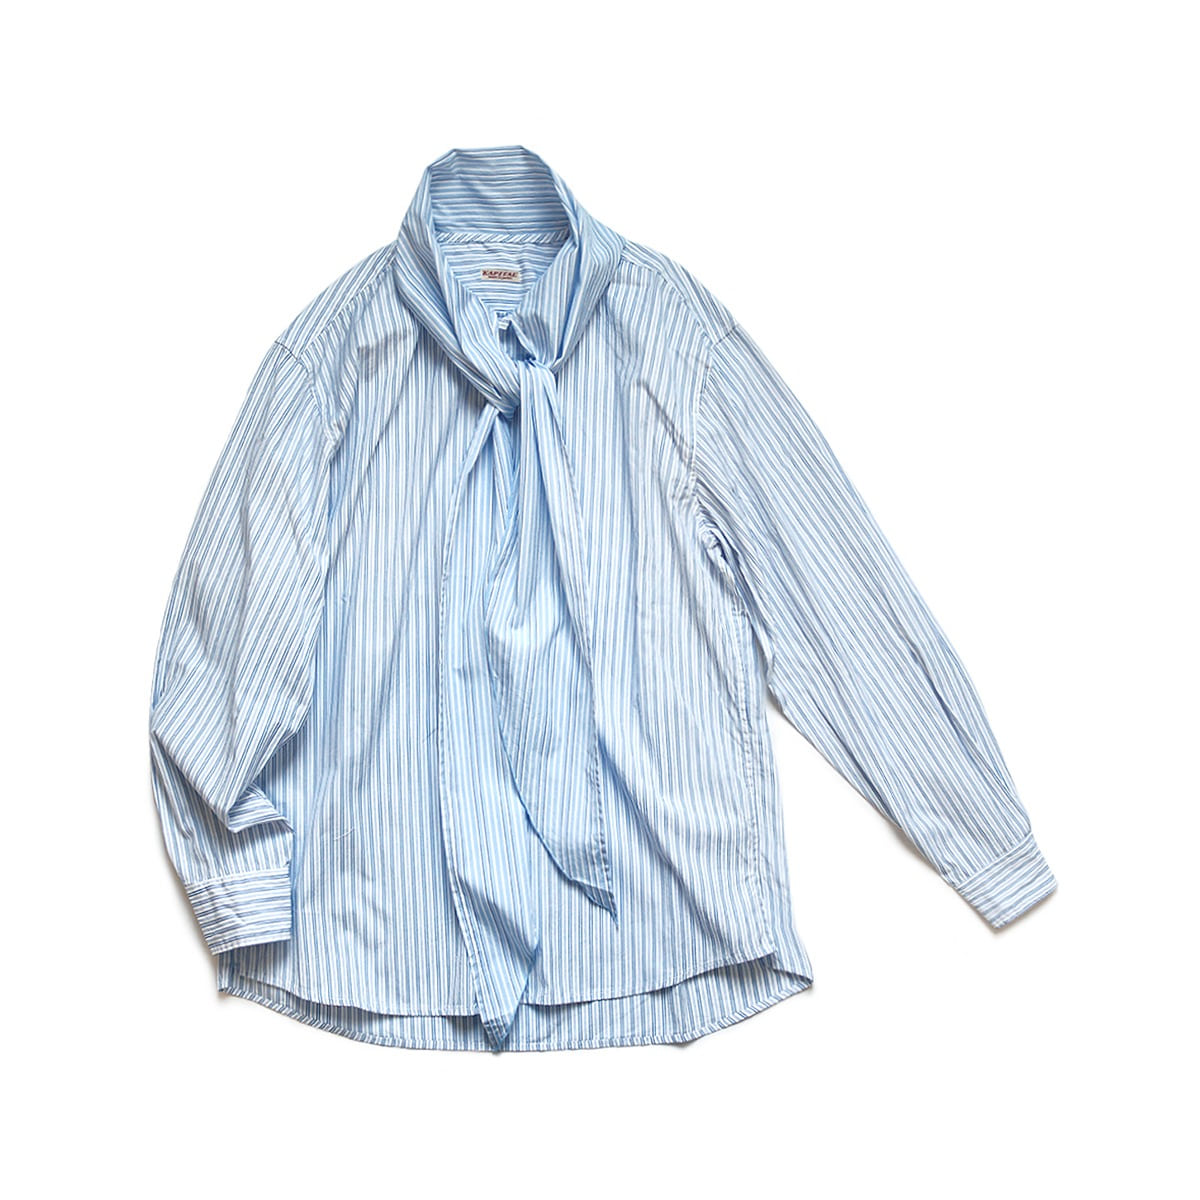 [KAPITAL] COTTON STRIPE BOWTIE PUBS SHIRT 'BLUE'